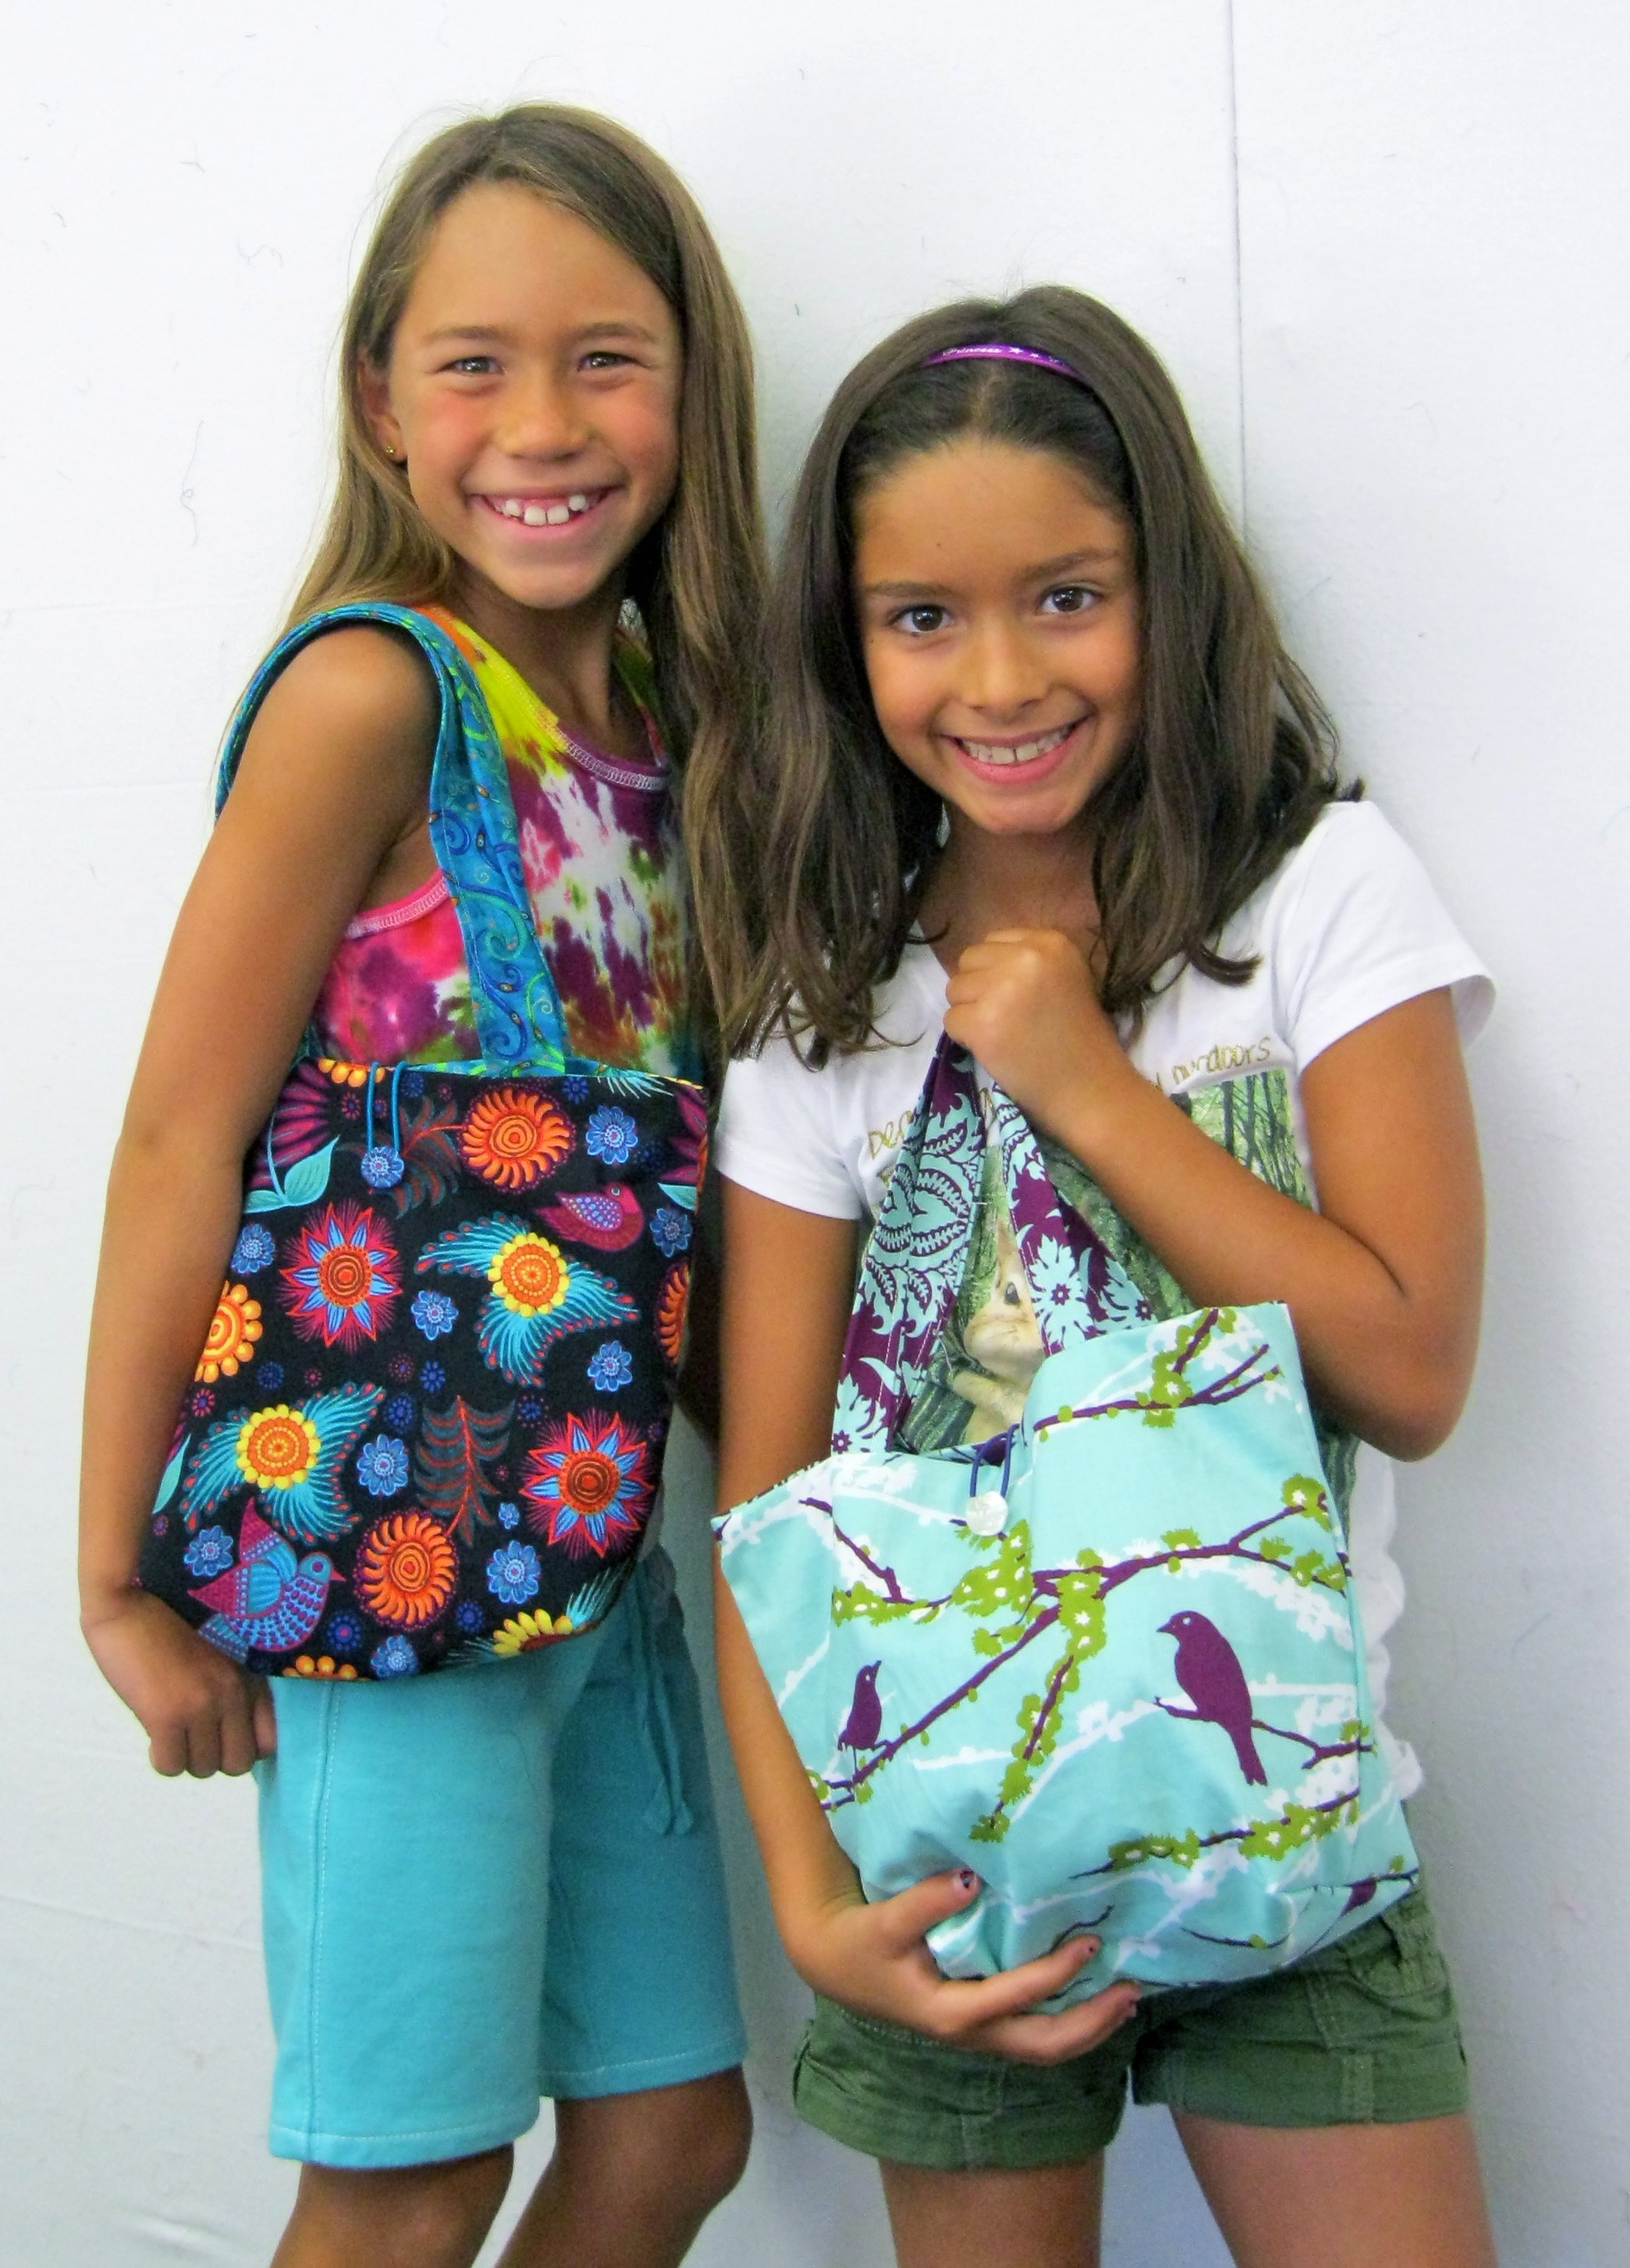 Little Bag Ladies!